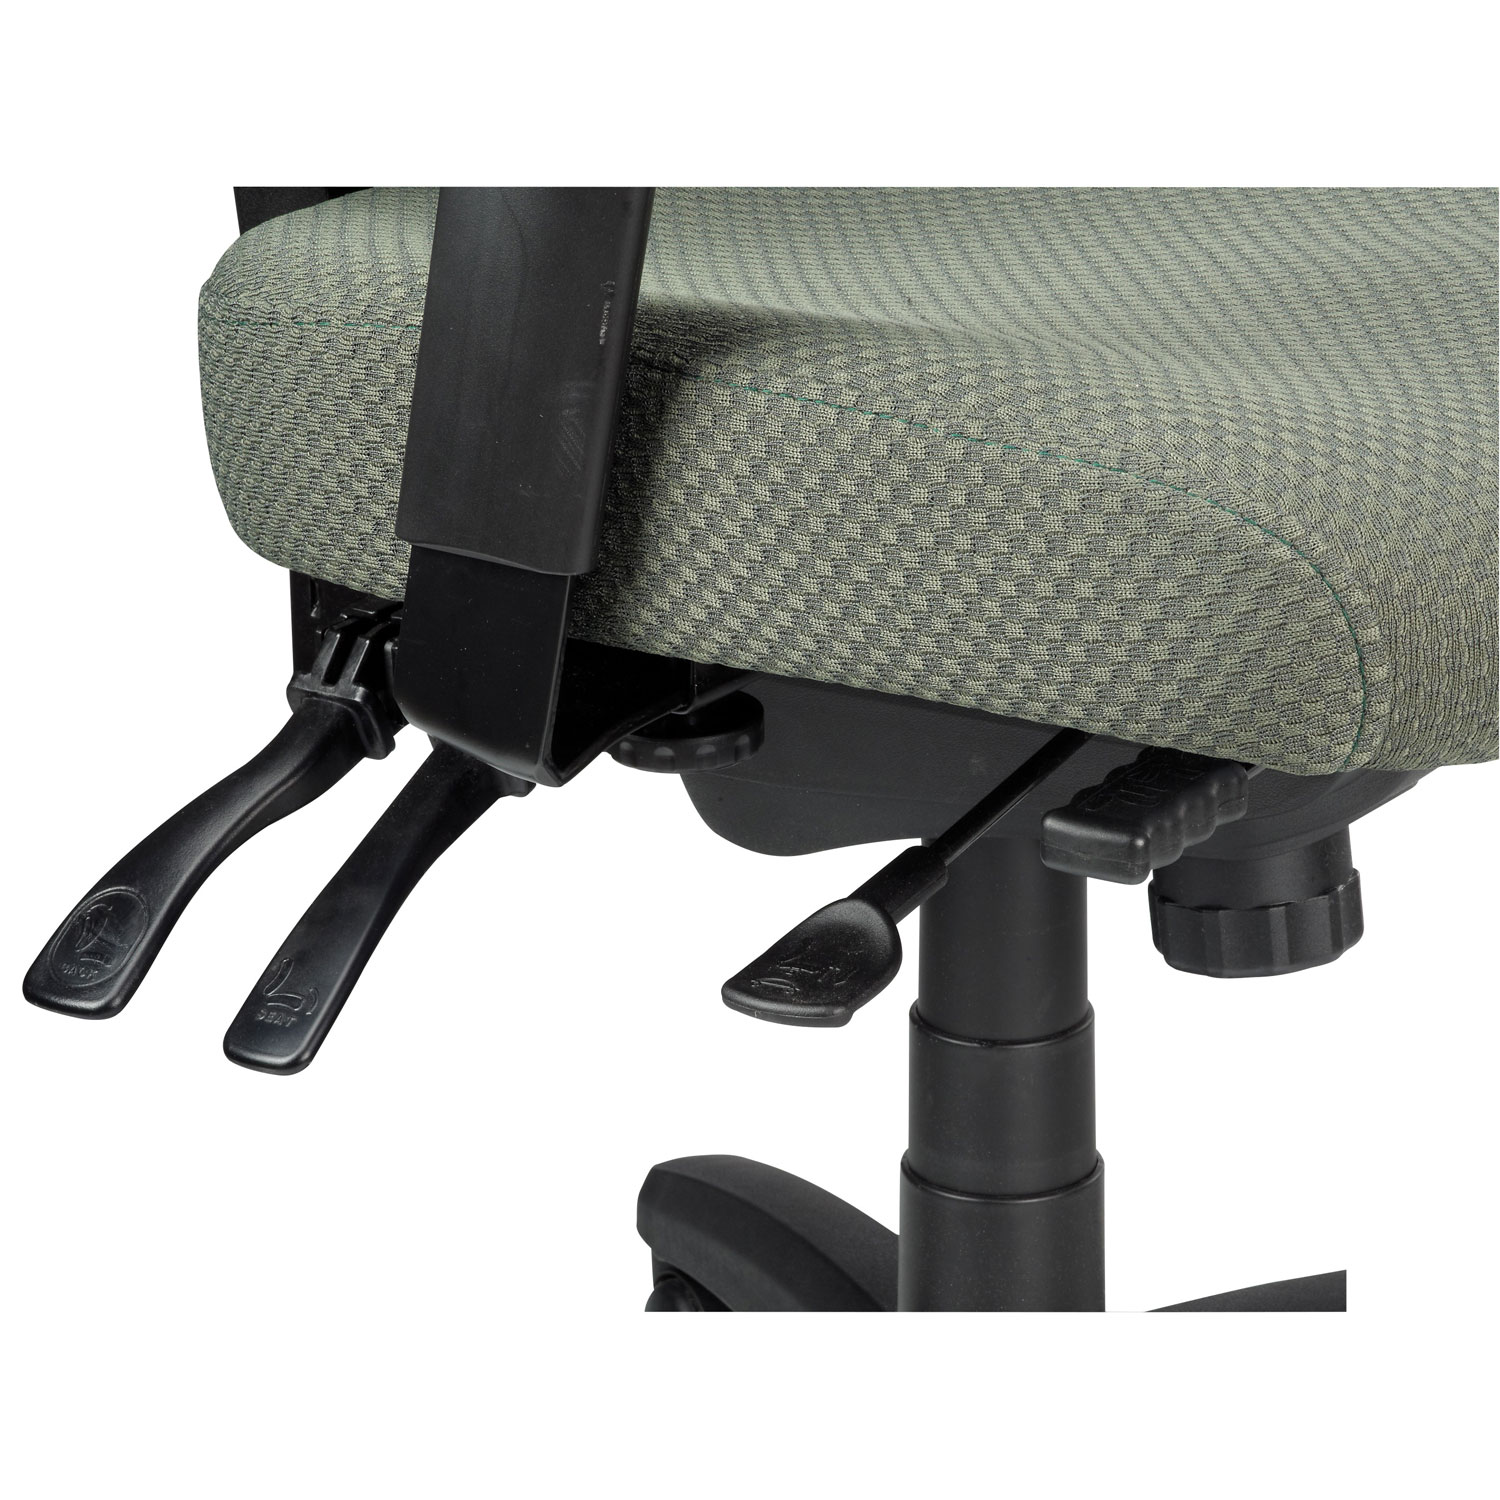 Temp By Raynor Tempur Pedic Ergonomic Mid Back Fabric Office Chair Olive Best Buy Canada